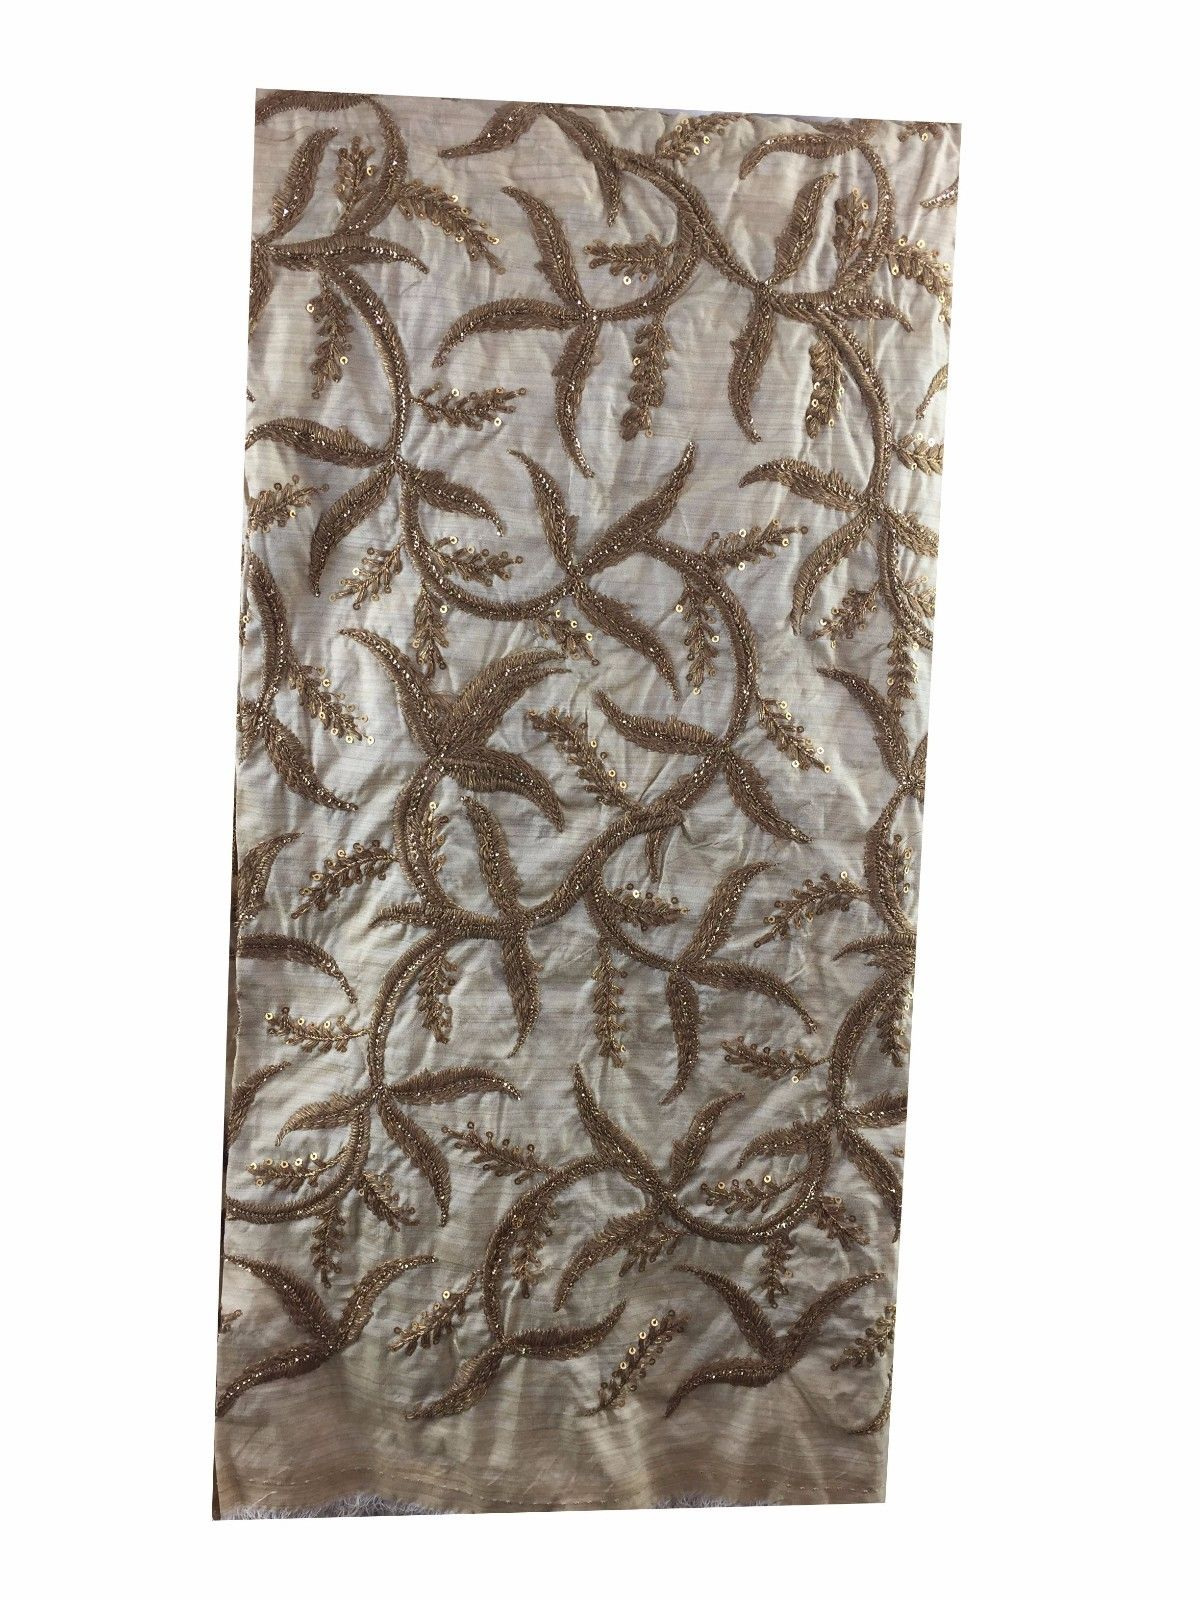 embroidery lace buy online online designer fabric store india Embroidered, Sequins Slub Beige, Brown, Gold 43 inches Wide 8063